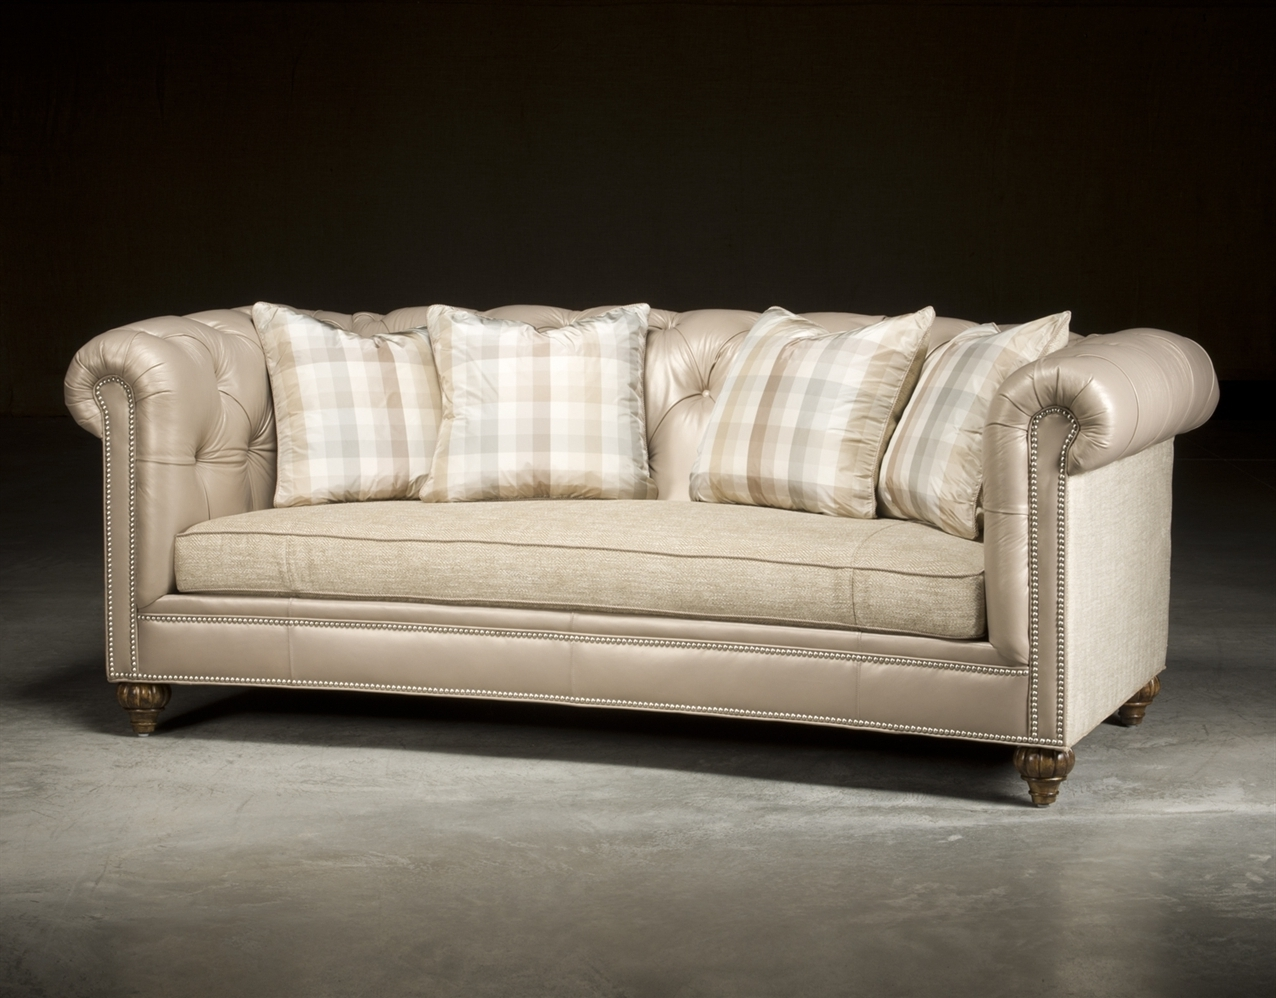 High End Sofas Throughout Latest High End Designer Sofas (View 10 of 20)